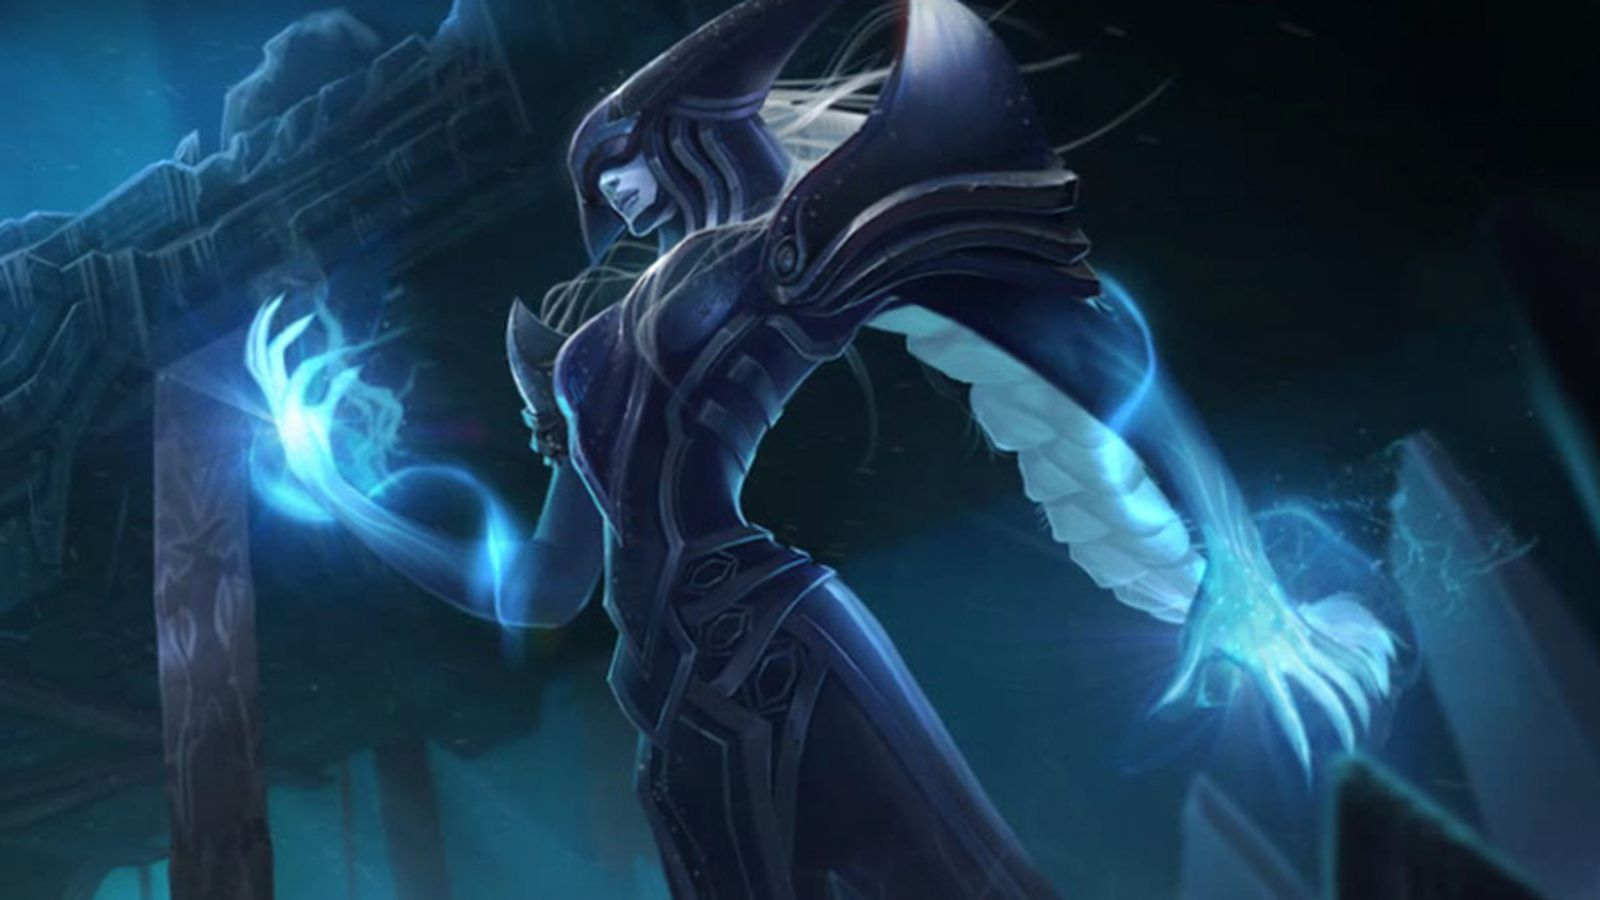 League of Legends trailer introduces the frigid Ice Witch ...